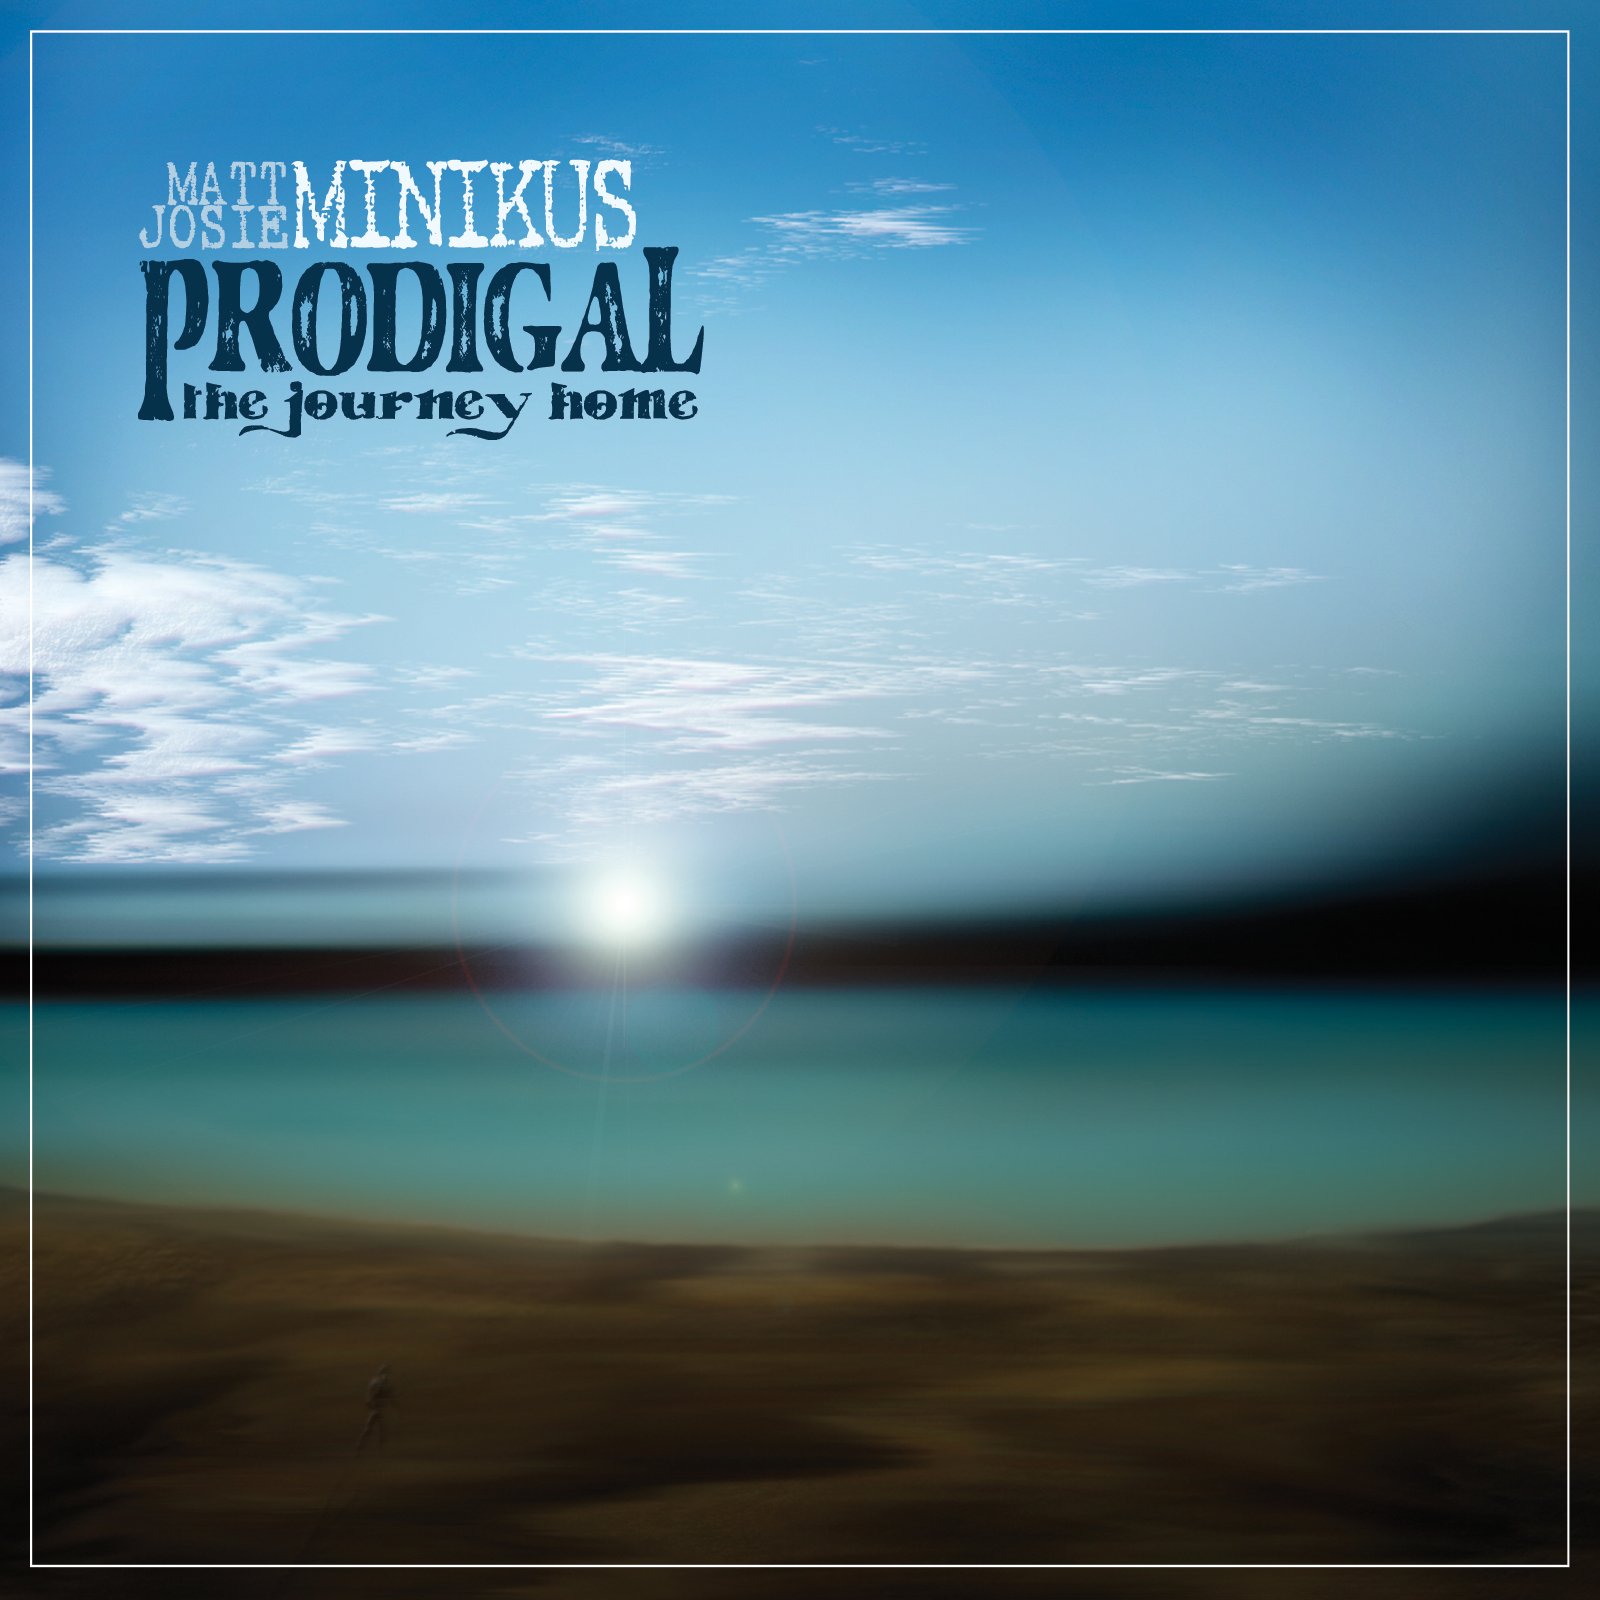 prodigal front cover